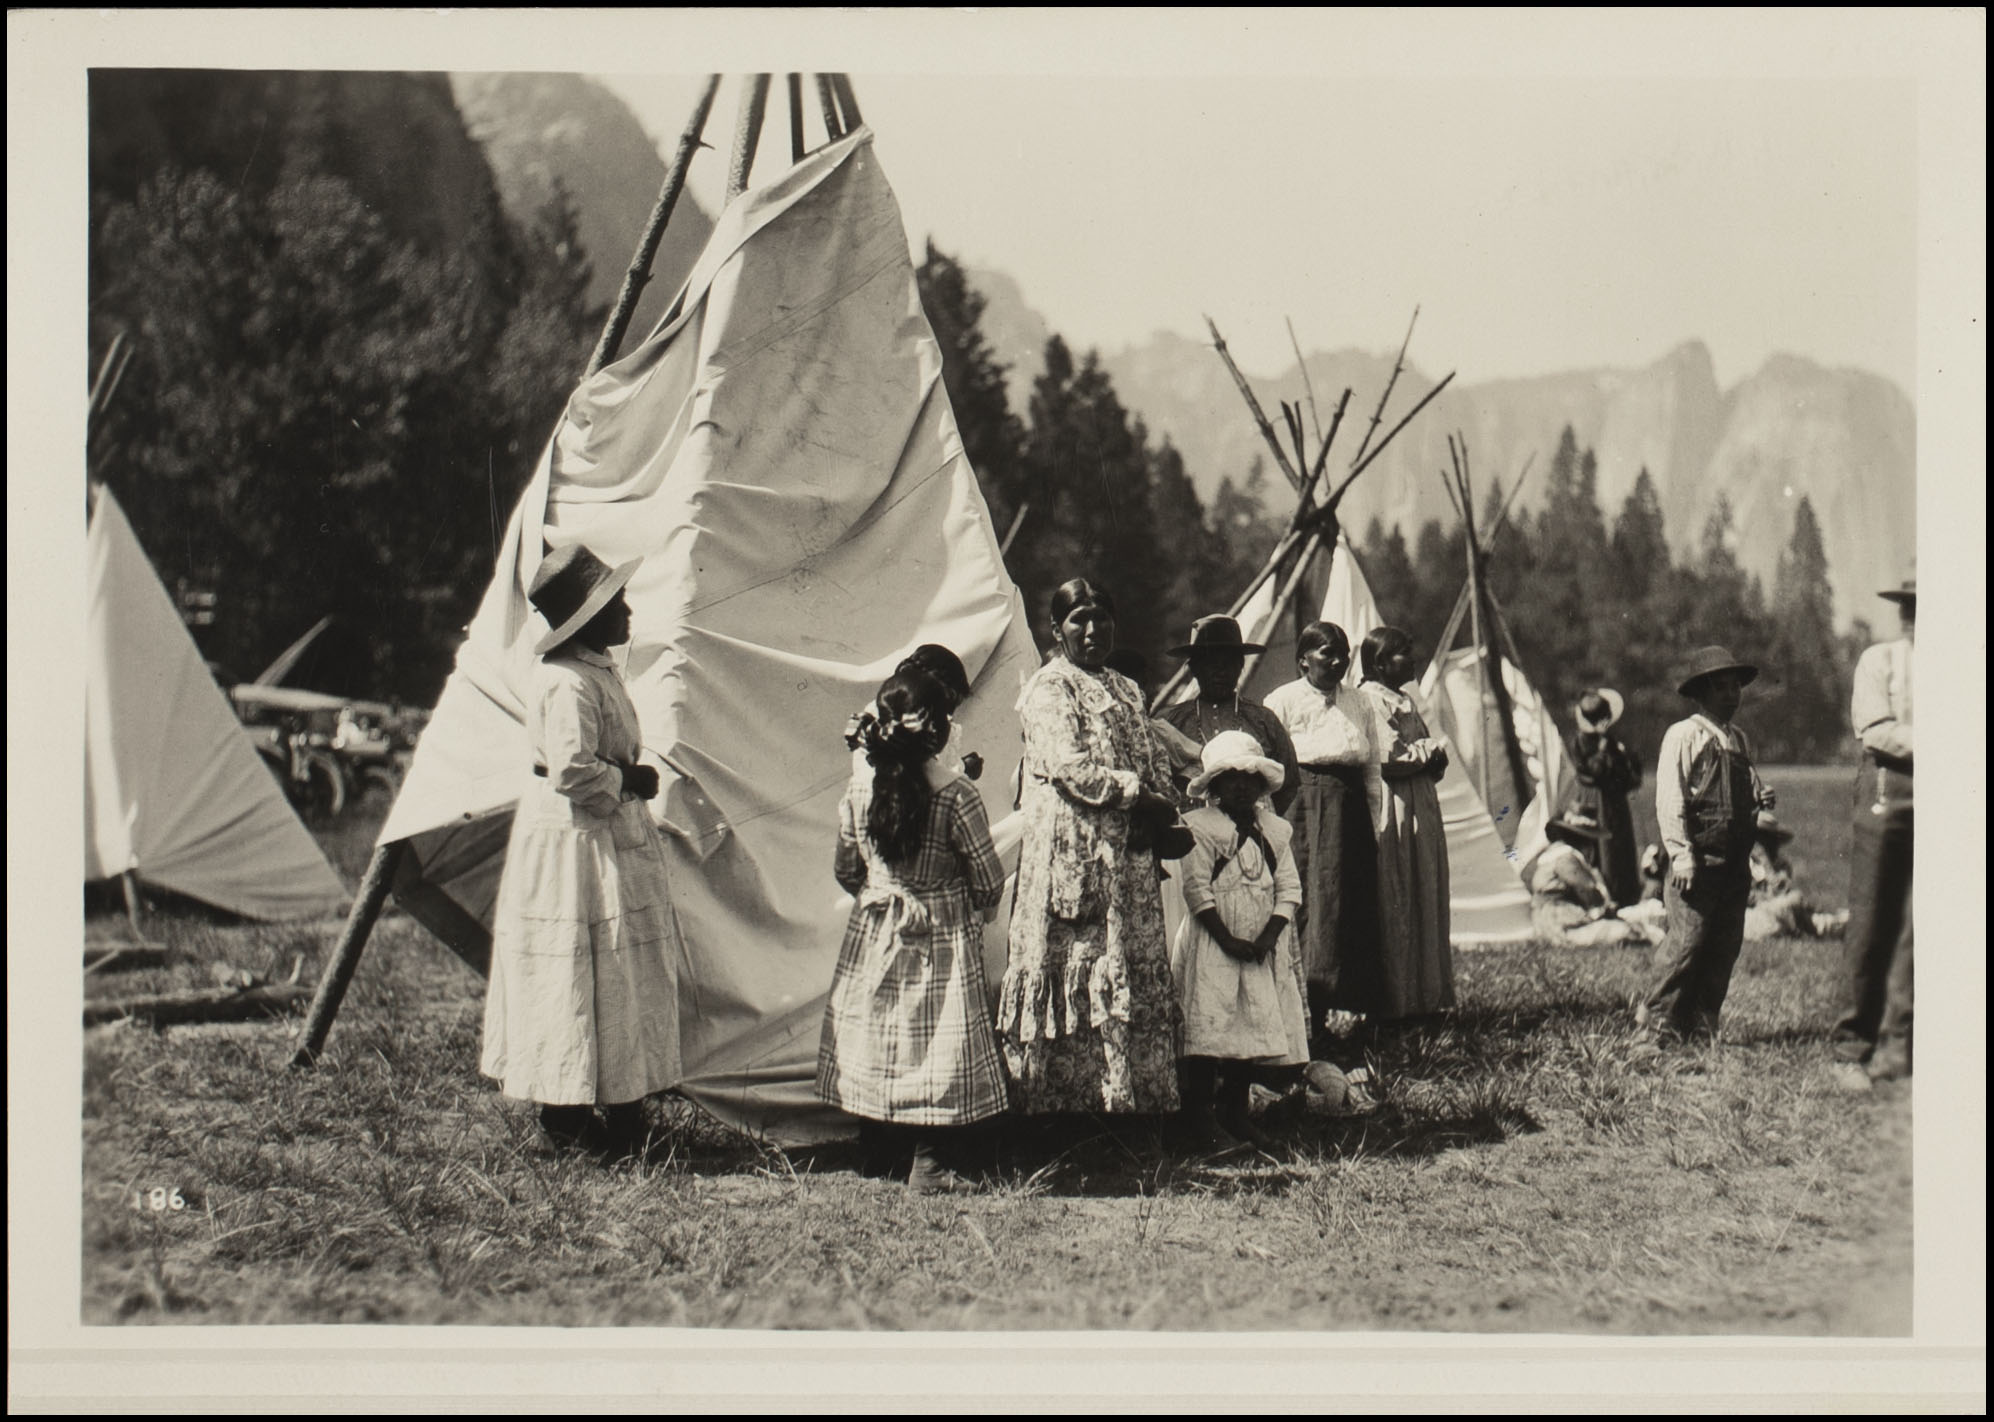 Life in the Valley: American Indians of Yosemite